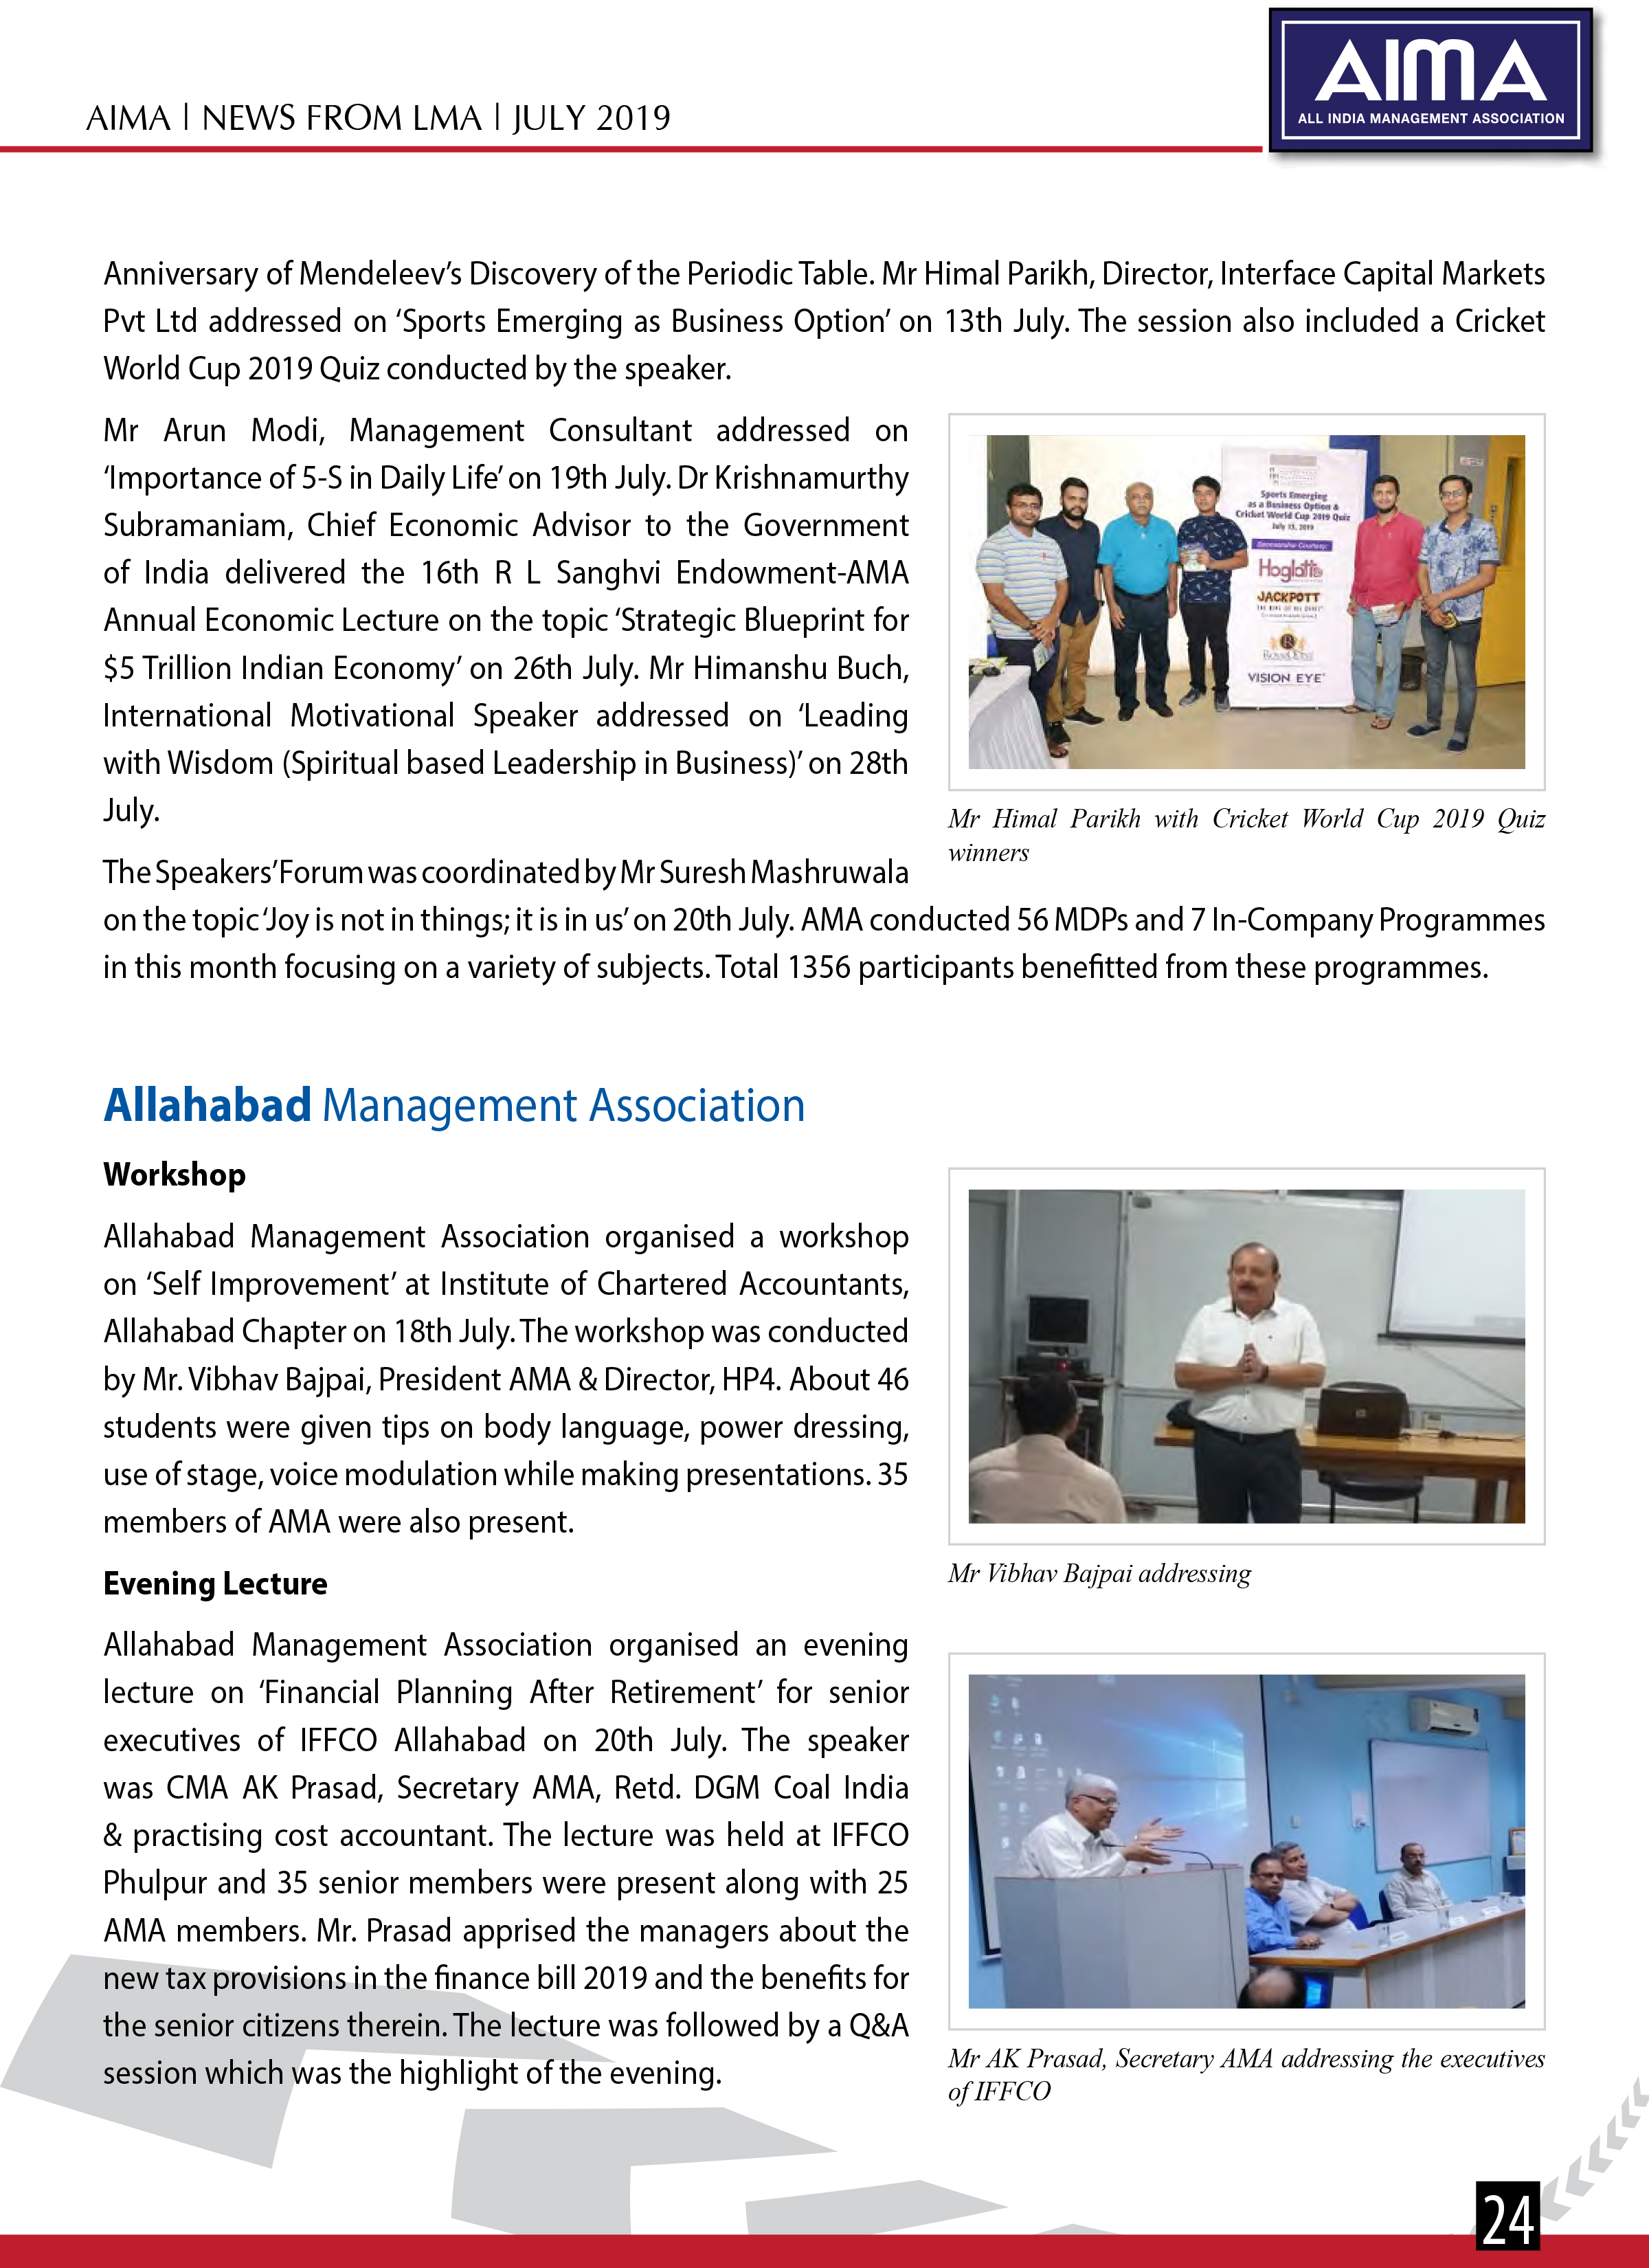 Aima News July 2019